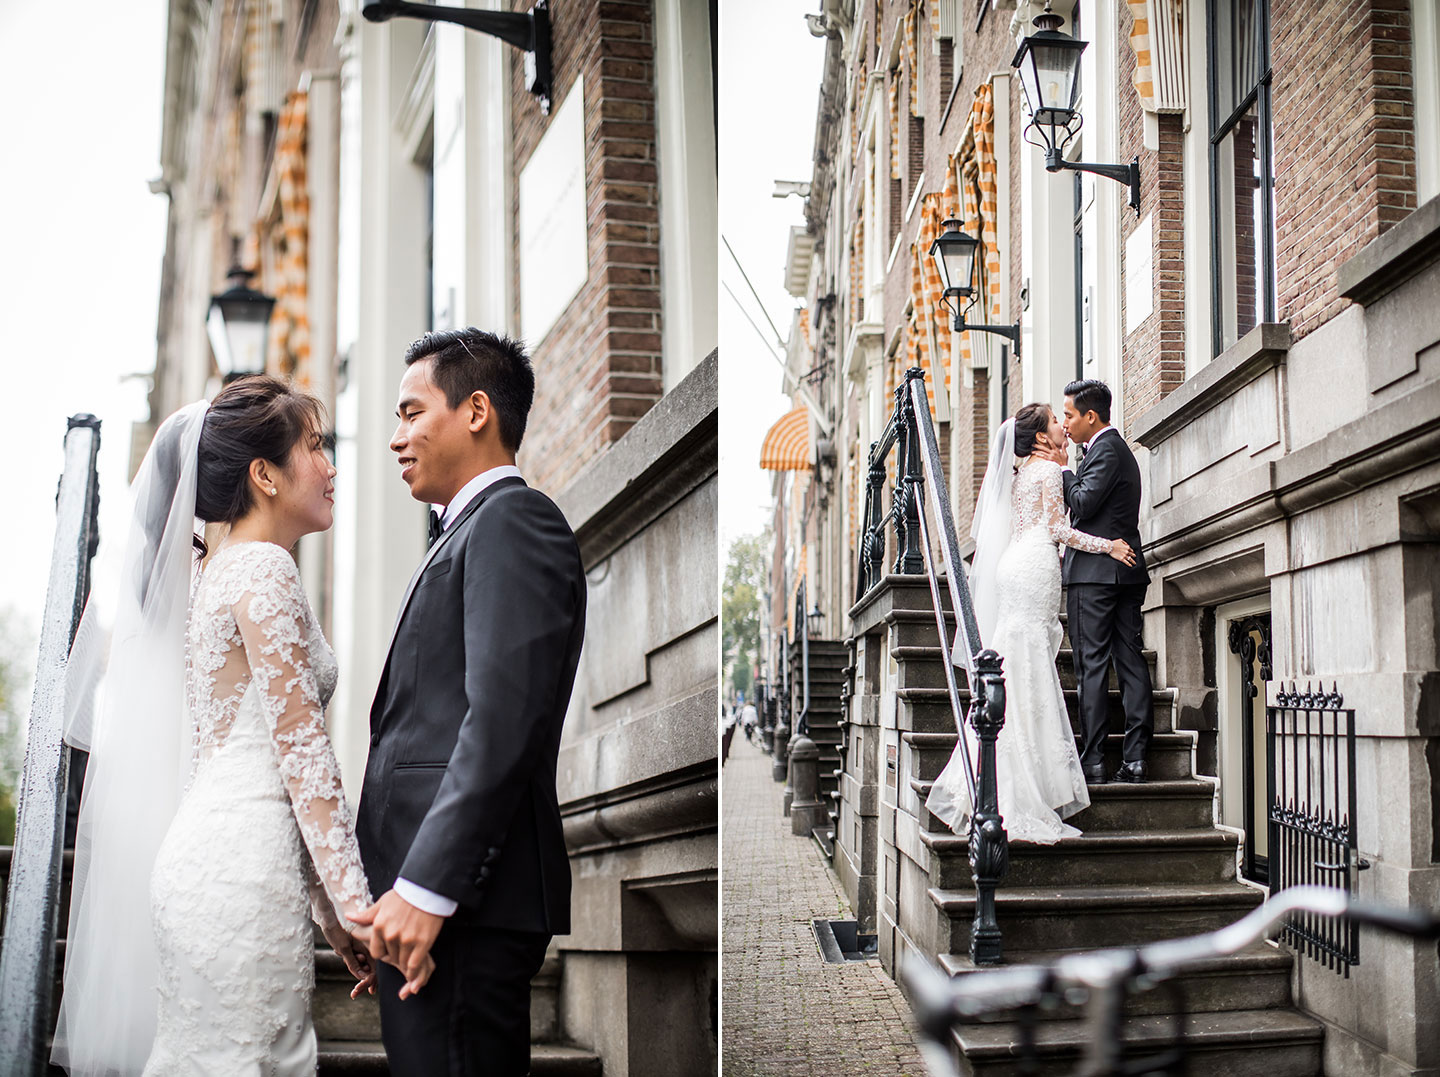 Engagement shoot in Amsterdam, the Netherlands